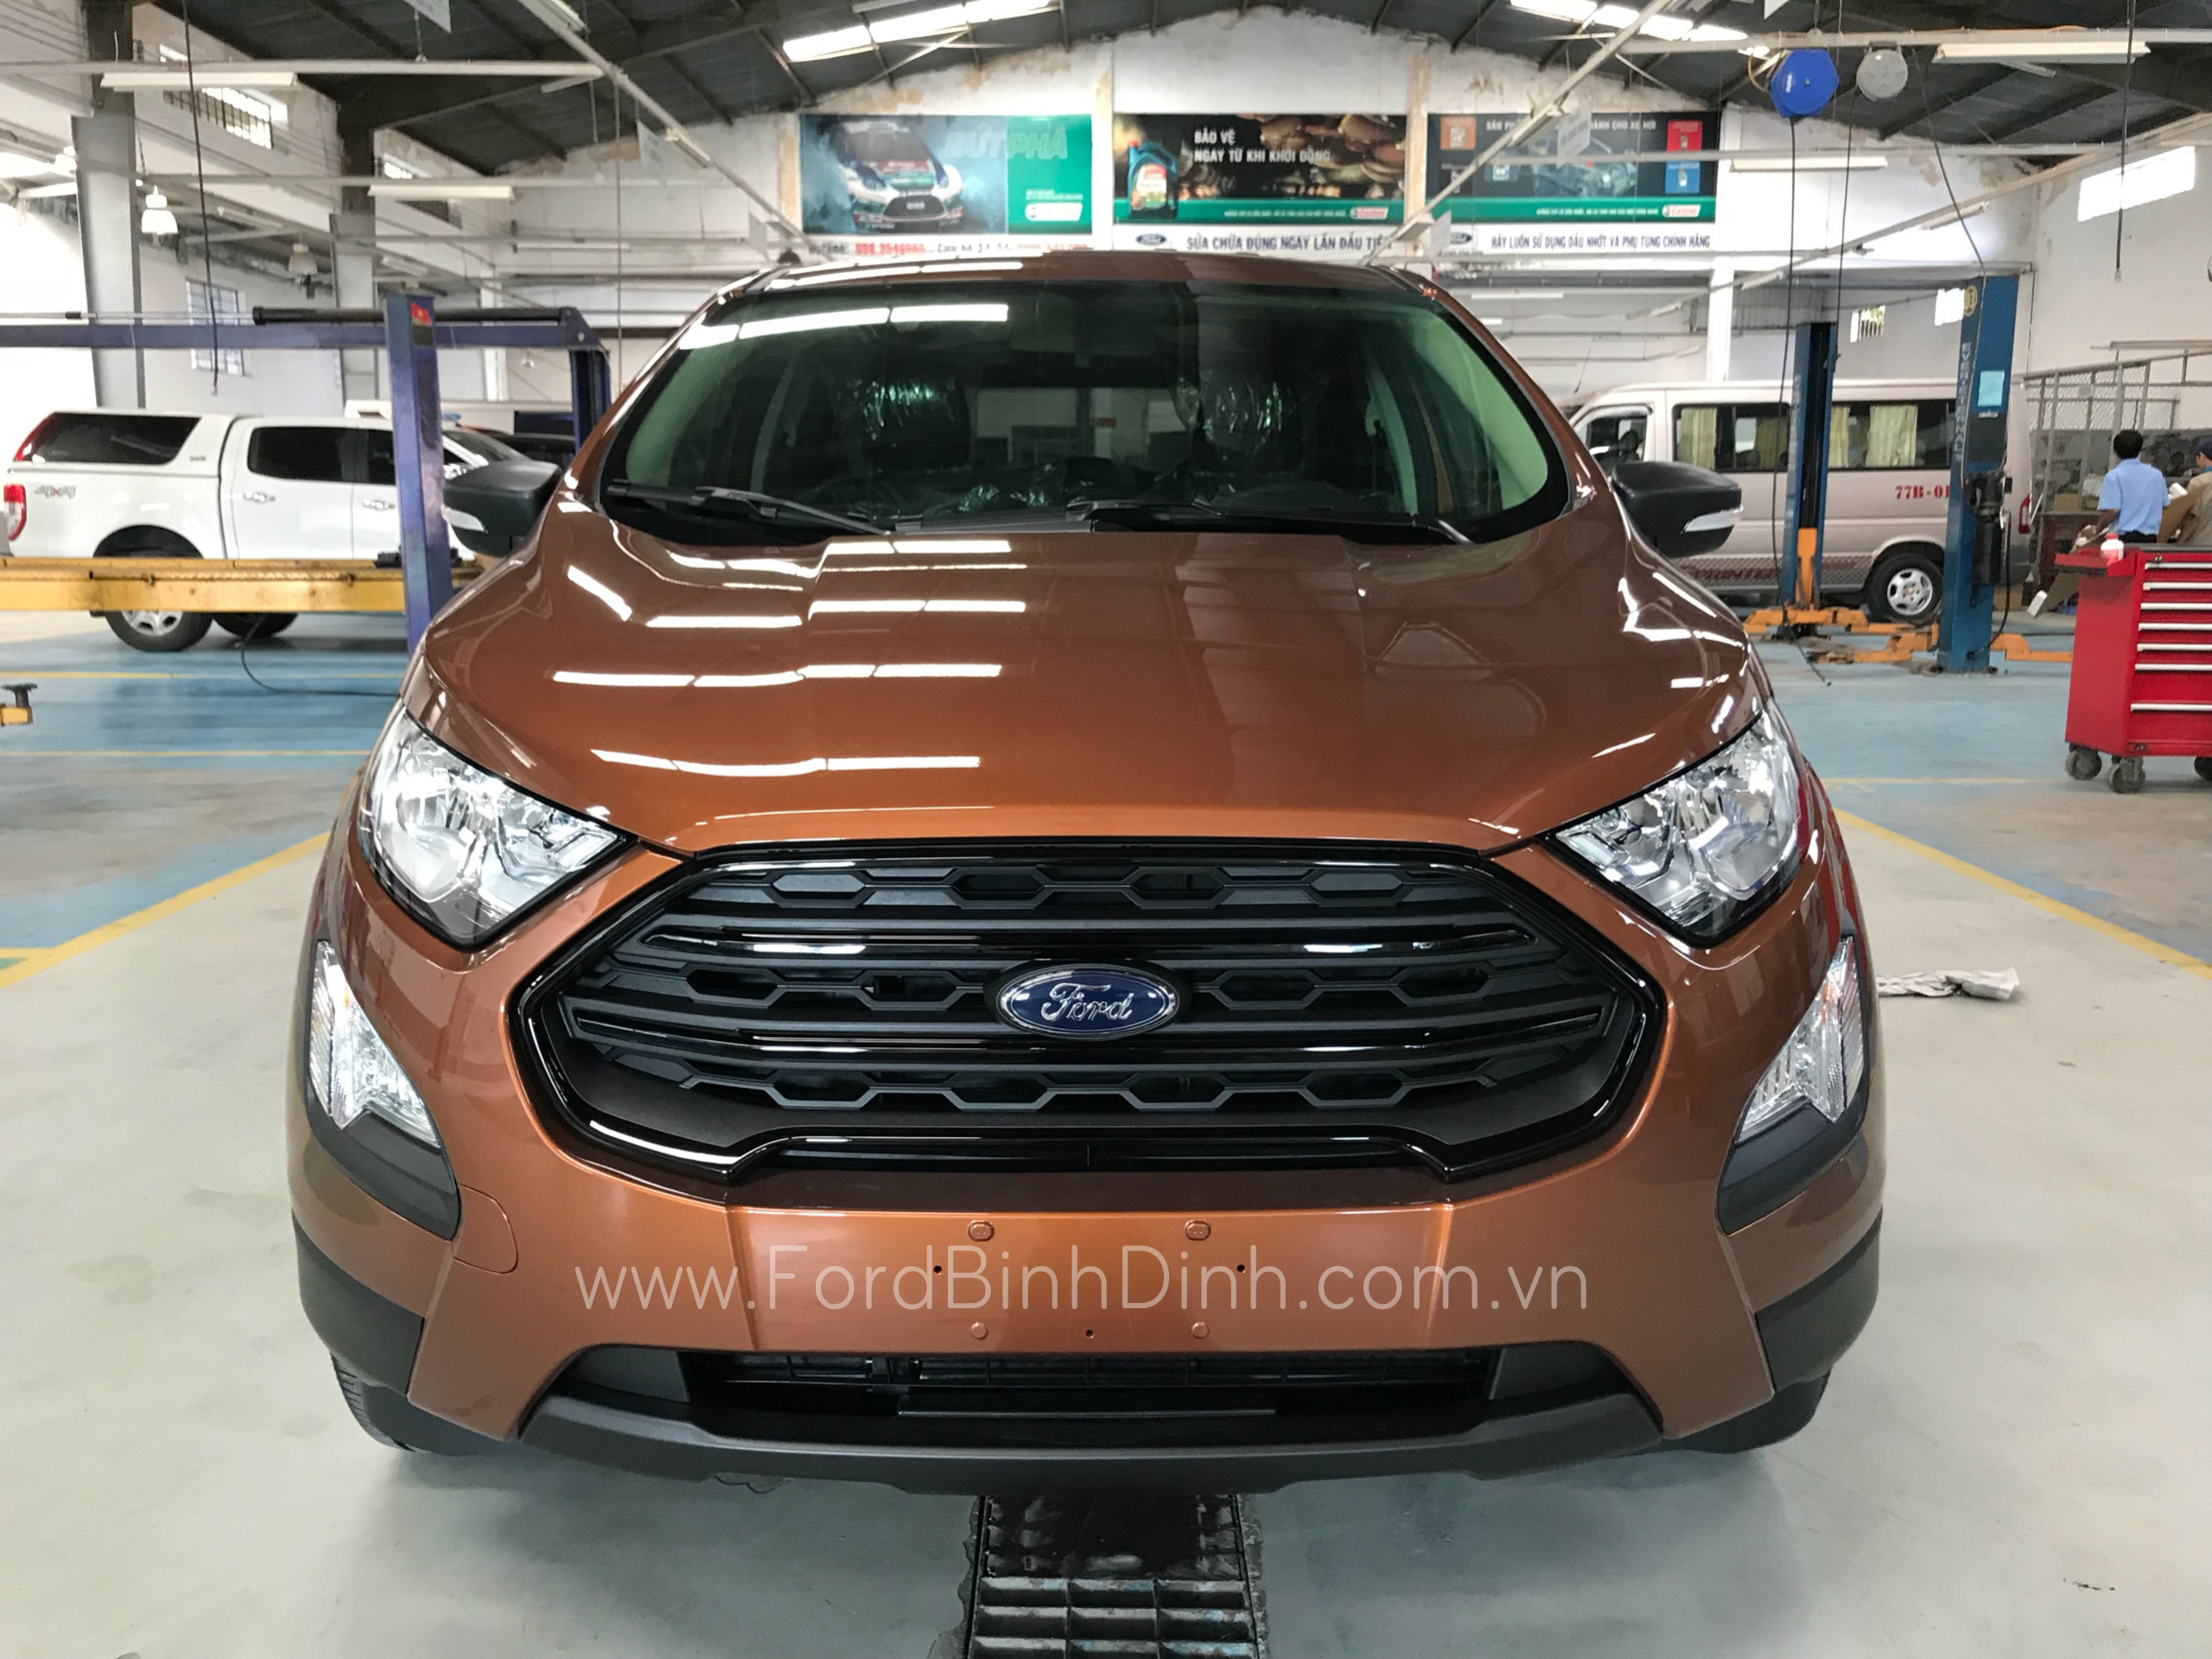 ecosport-1.5l-ambiente-at-ford-binh-dinh-com-vn-1